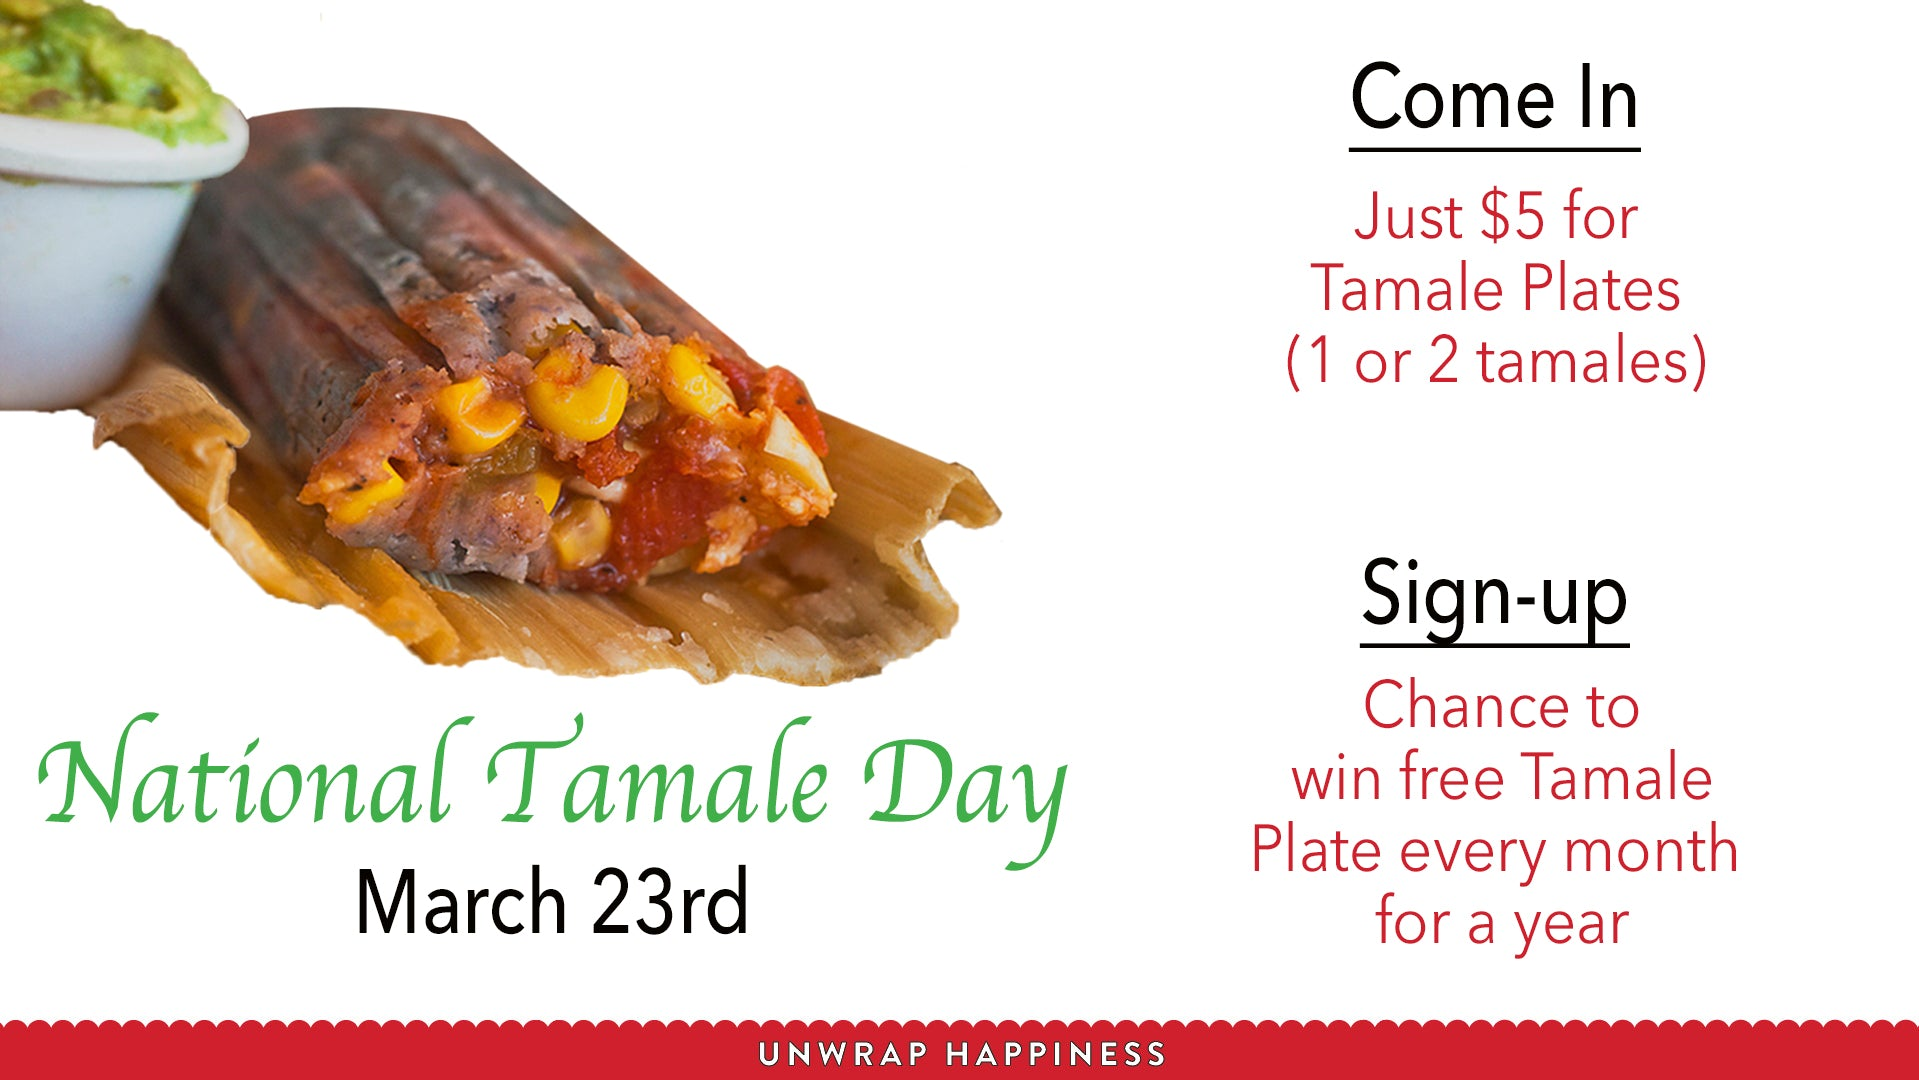 National Tamale Day Deals